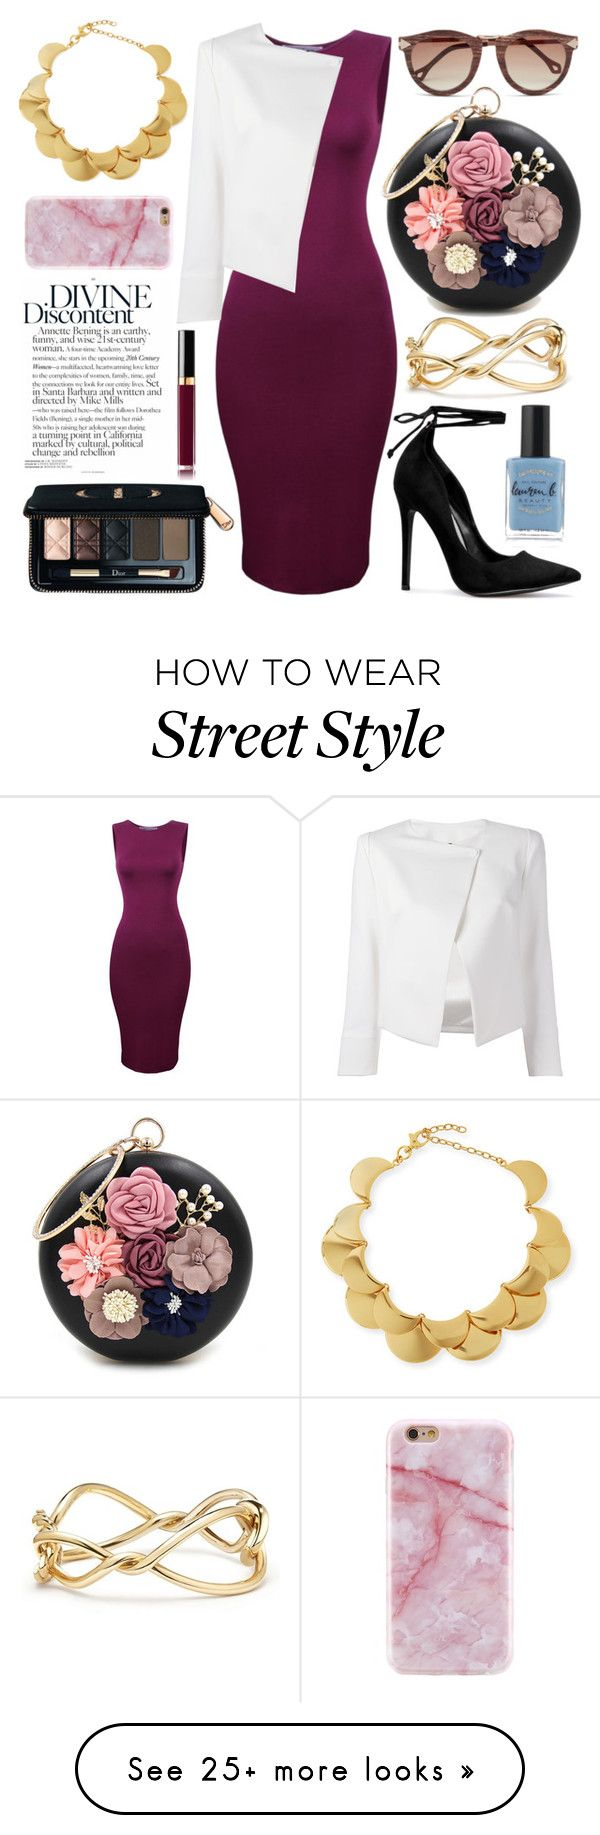 """✨✨✨"" by bstaudacher on Polyvore featuring WithChic, Lele Sadoughi, Plein Sud Jeanius, David Yurman, Christian Dior and Lauren B. Beauty"